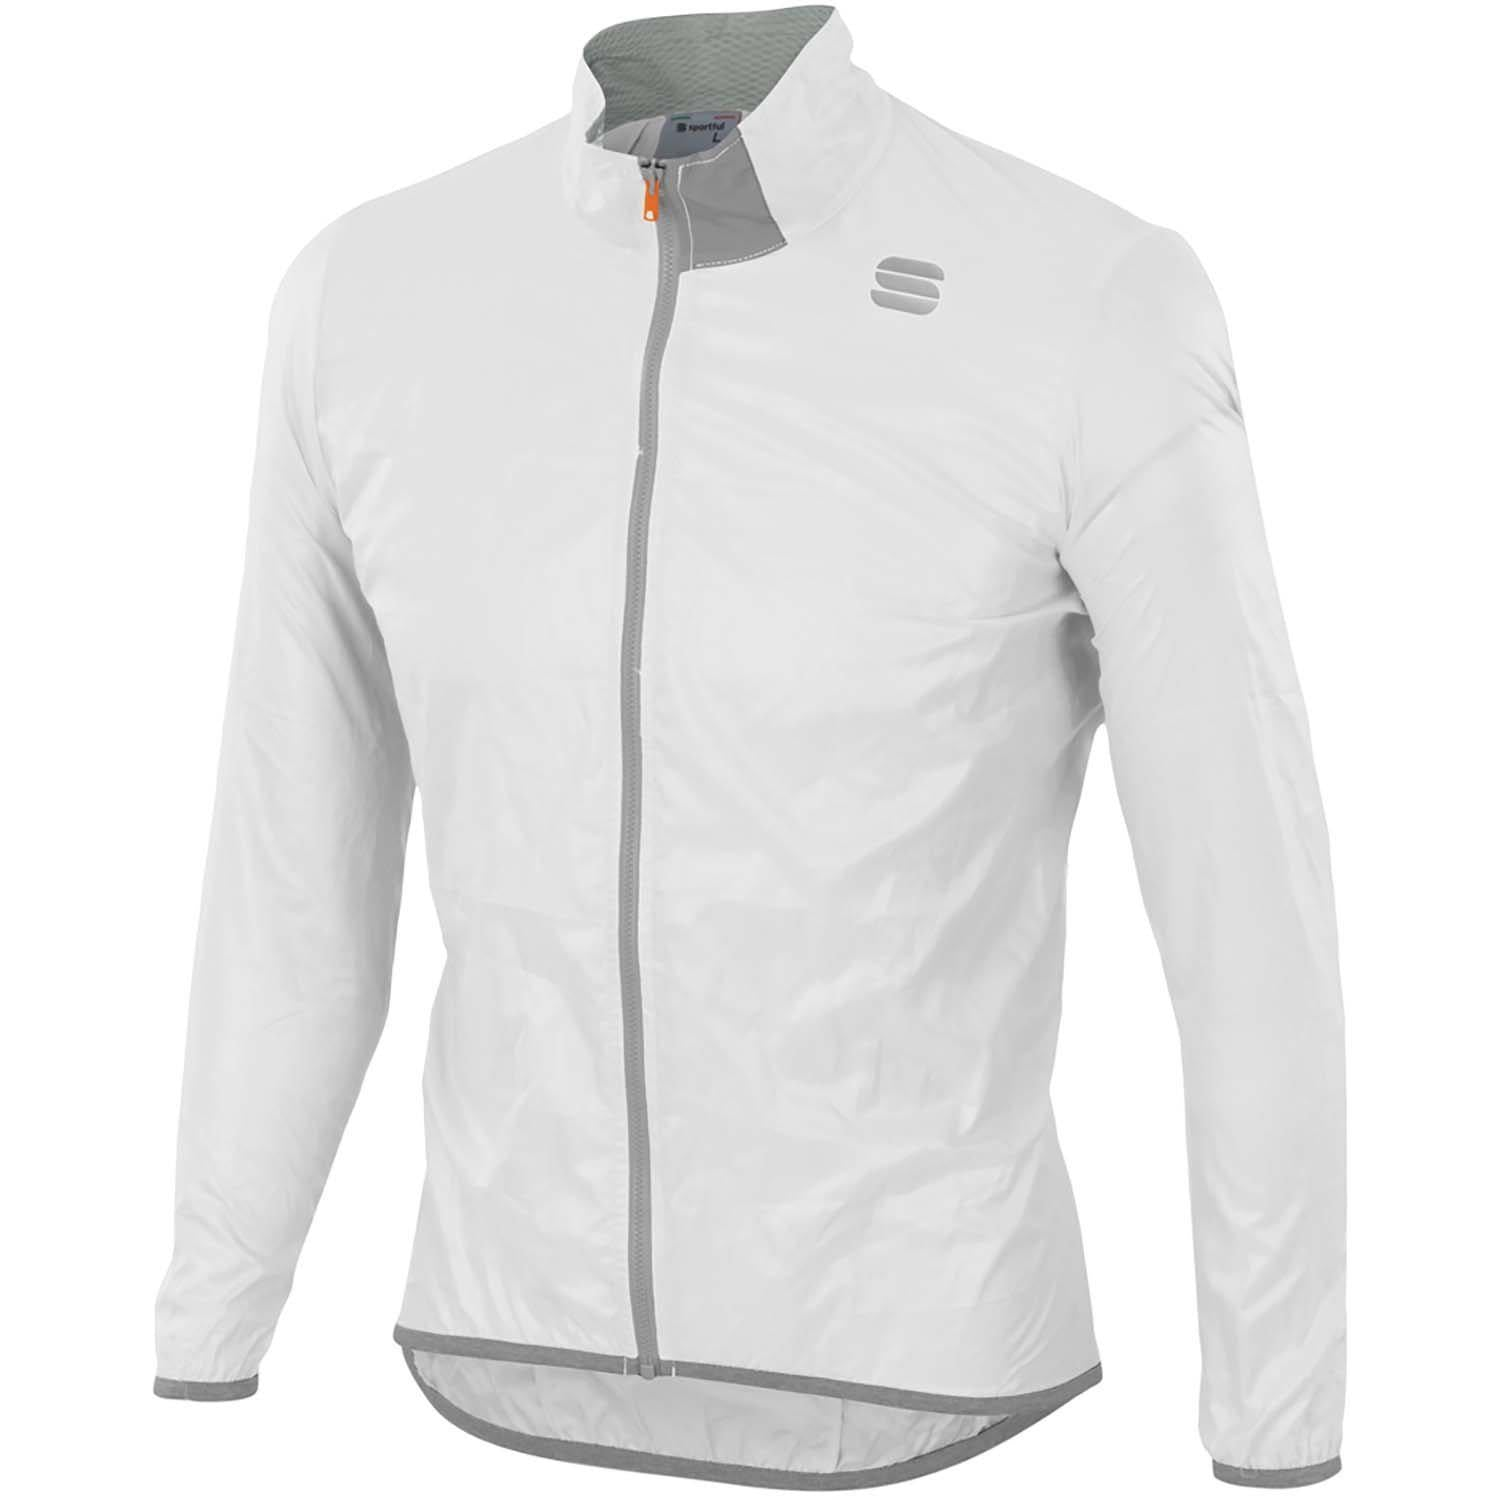 Sportful-Sportful Hot Pack Easylight Jacket-White-S-SF020261012-saddleback-elite-performance-cycling